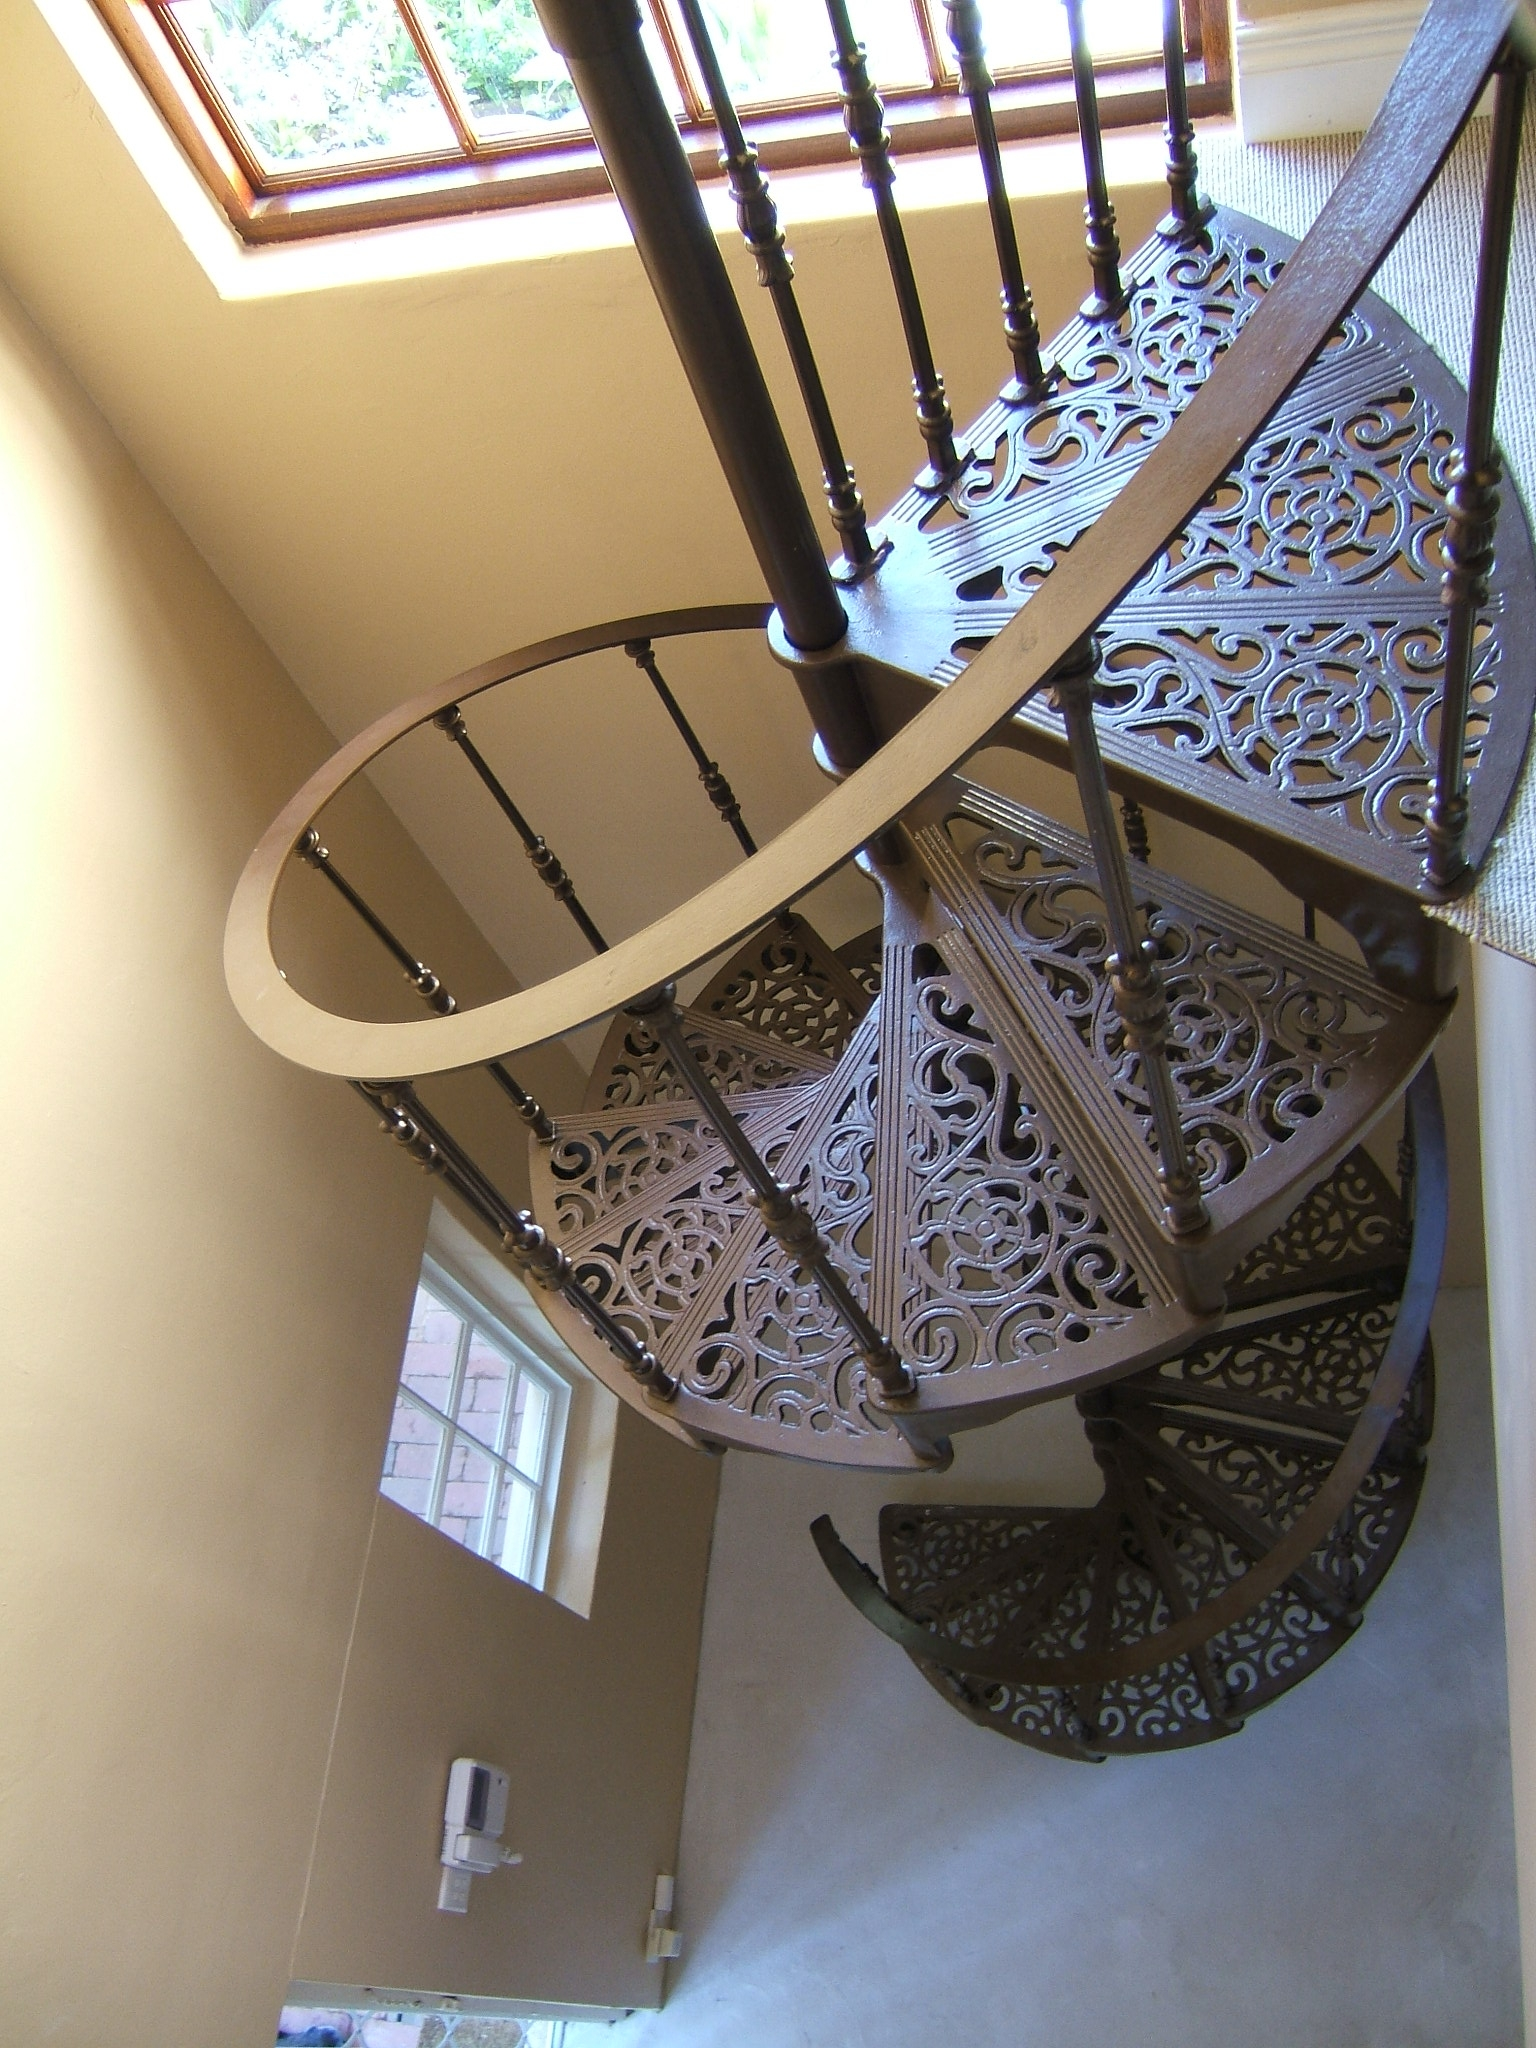 Spiral Staircases Heritage Castings   Metal Staircase For Sale   Prefab   Outdoor   Contemporary   Tangga   Steel Structure